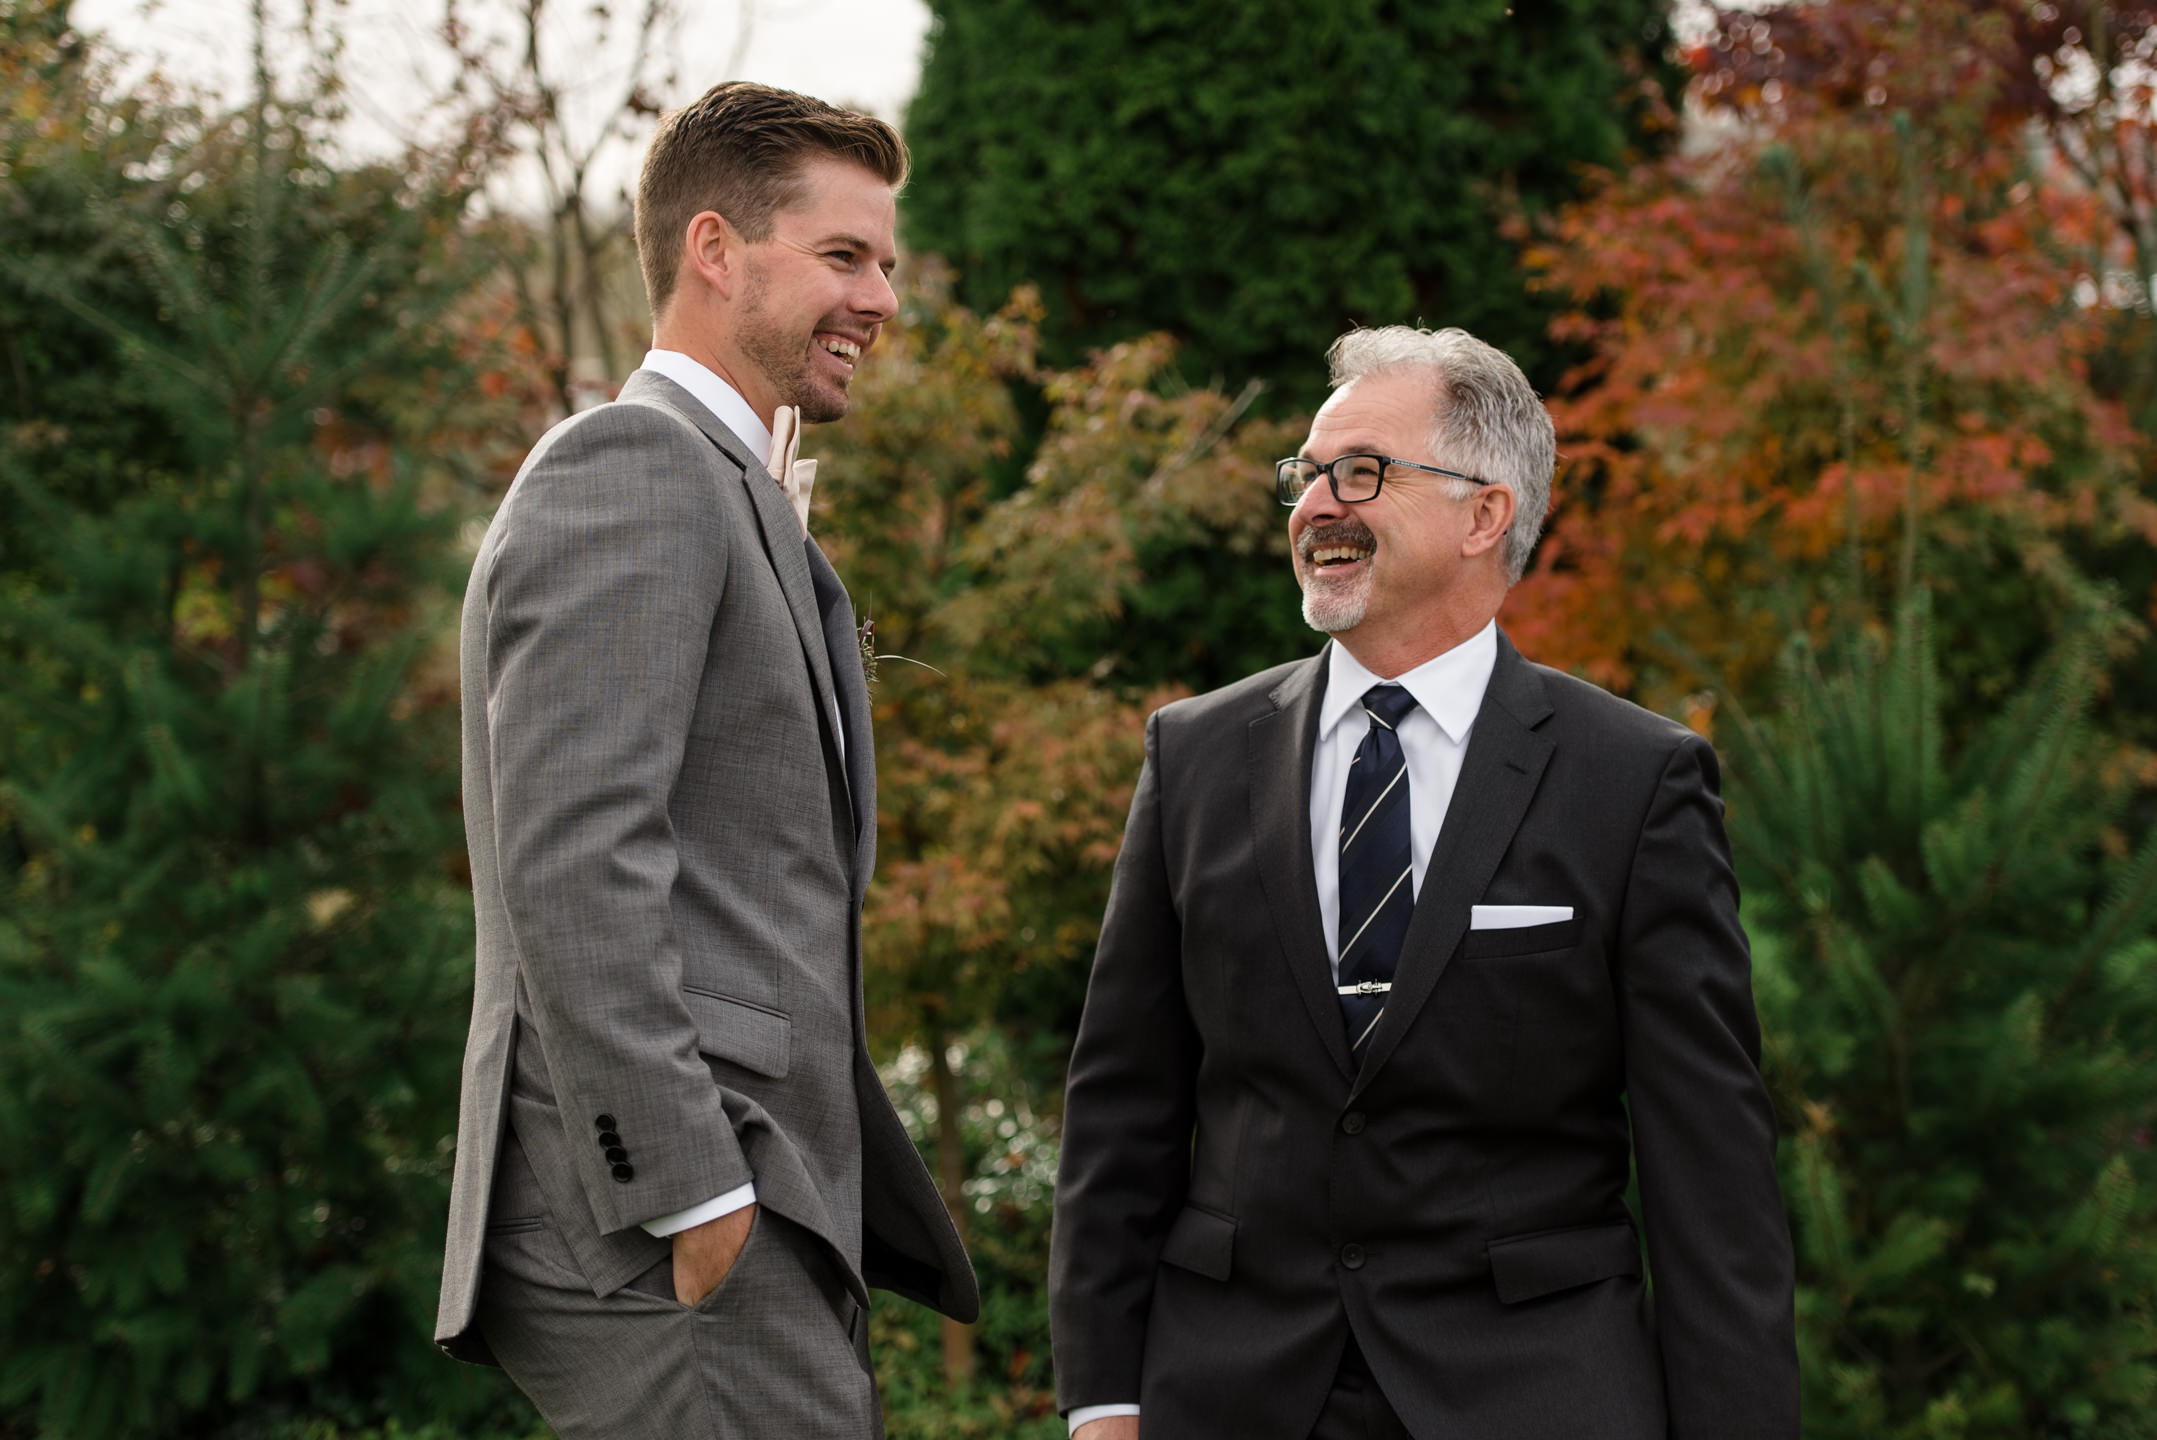 Groom and Father Happy Laugh during Family Portraits